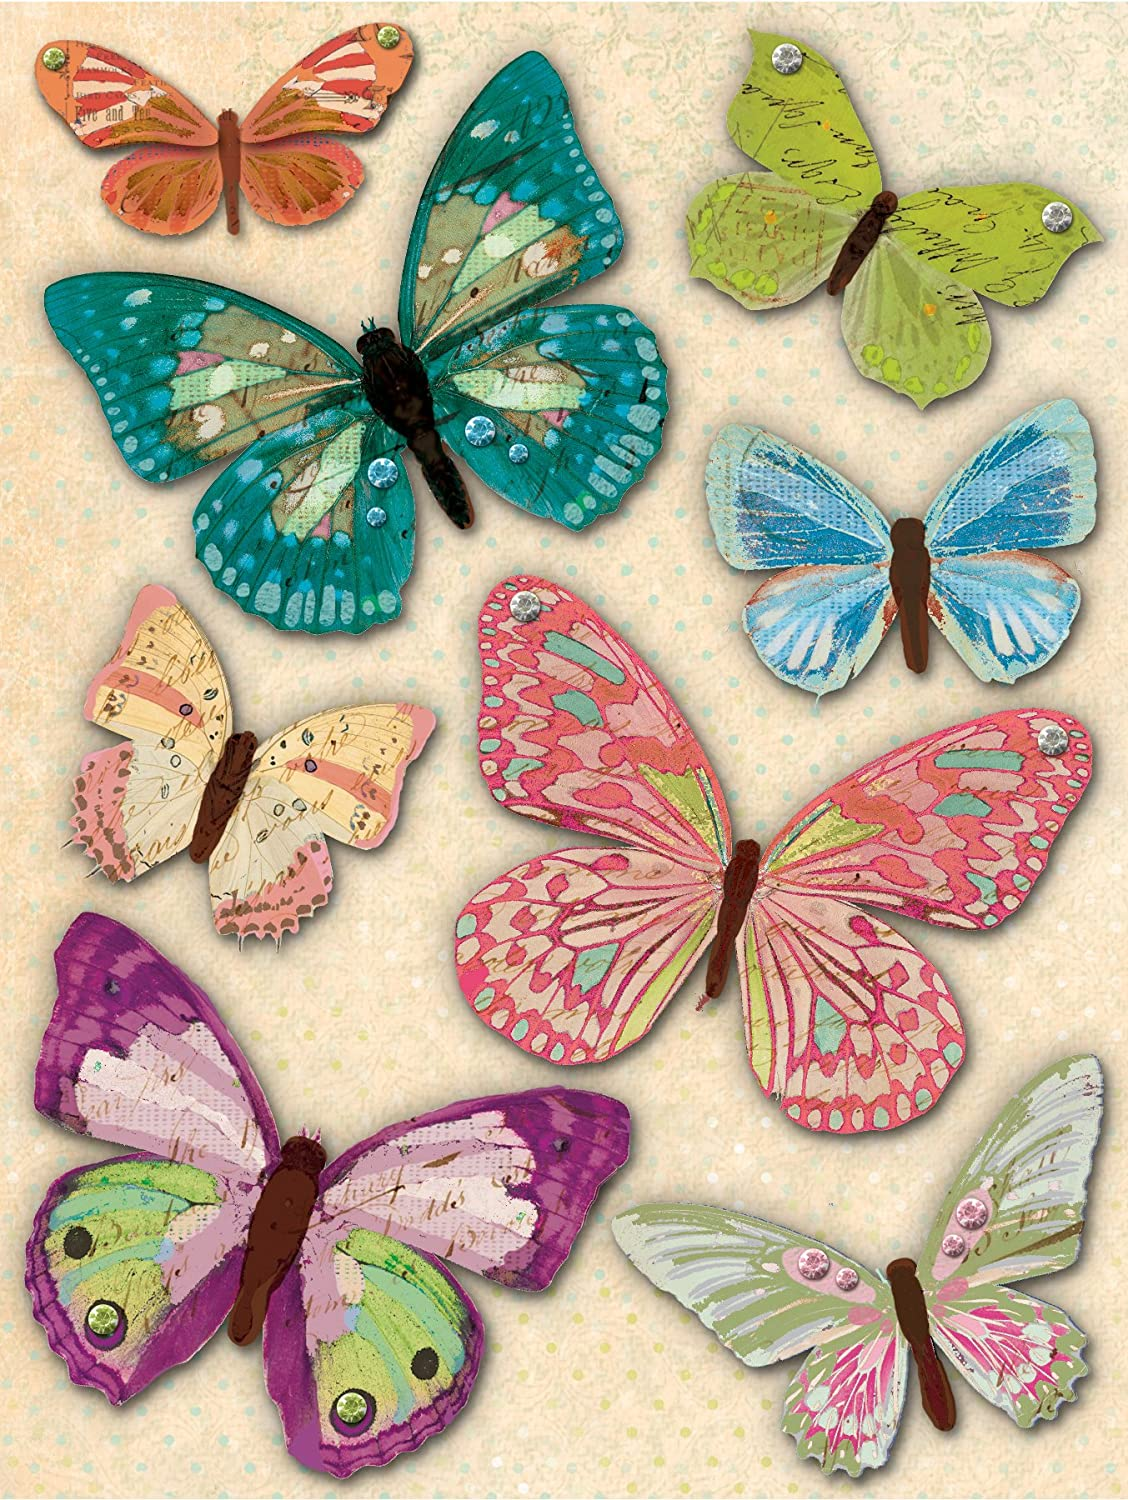 K&Company Jubilee Butterfly Grand Adhesion Stickers